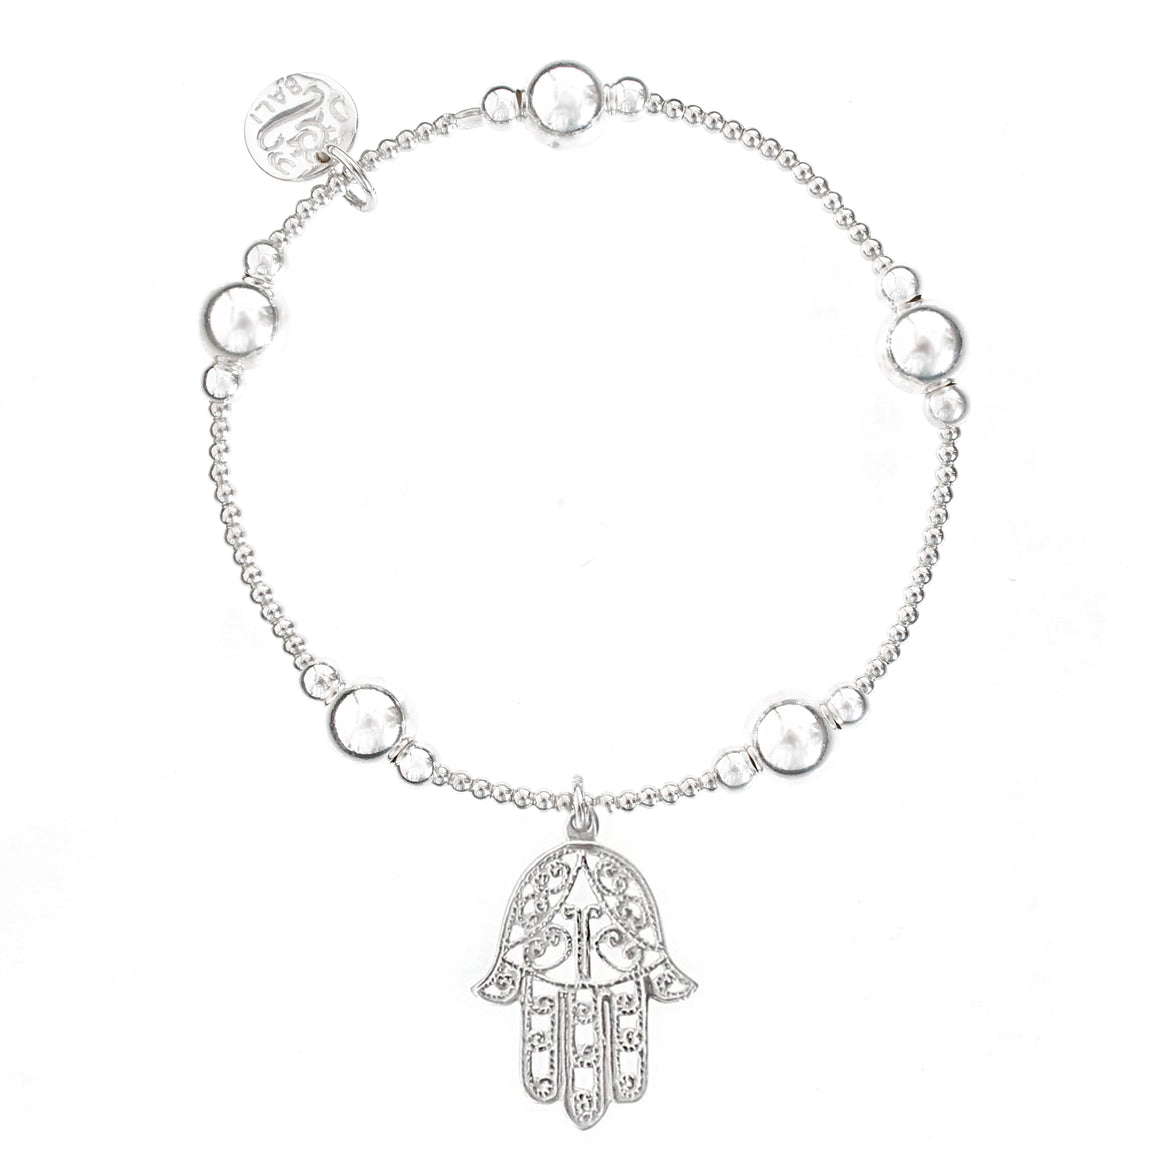 Hamsa Bali Ball Bracelet - good charma